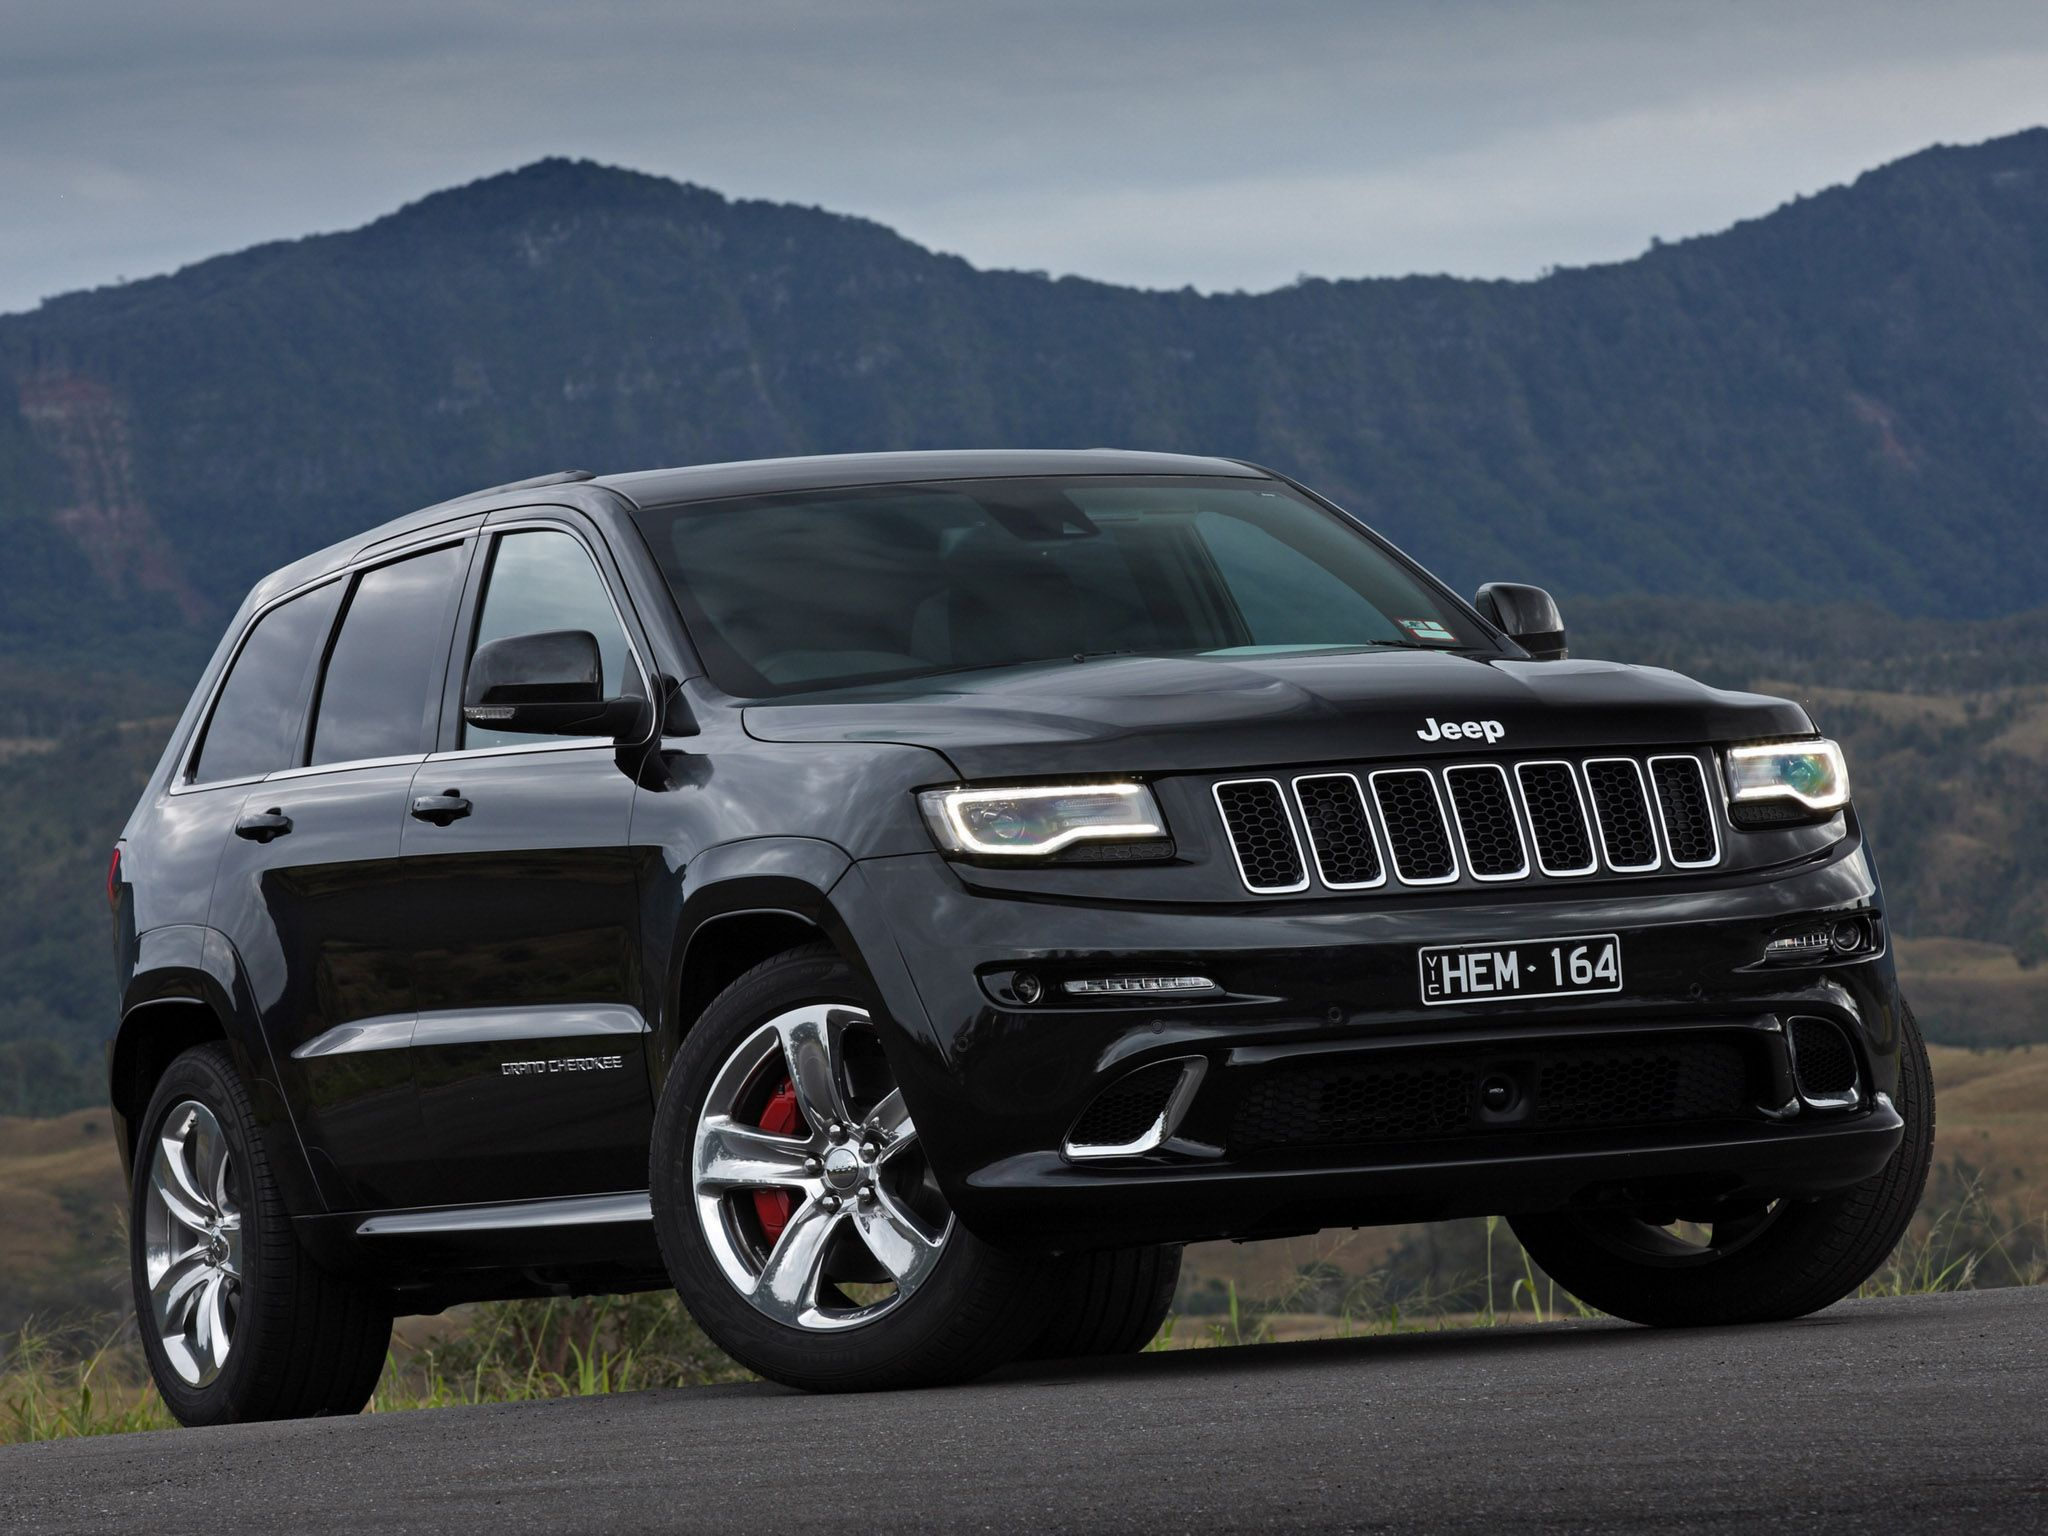 Those Headlights 2014 Jeep Grand Cherokee Srt Wk2 Australia Black Car Front View Jeep Grand Mini Van Jeep Grand Cherokee